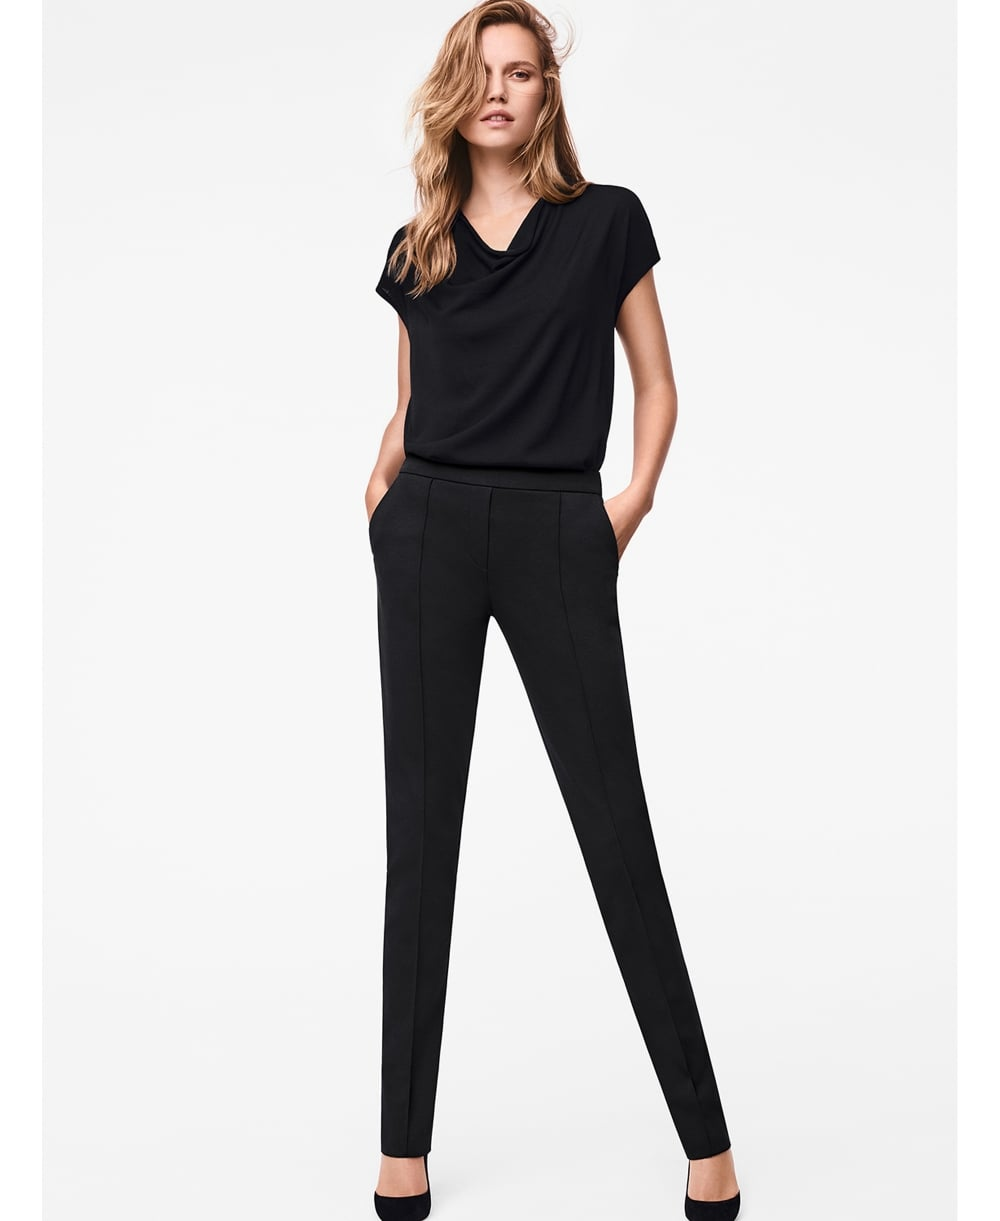 4452edbe548 Wolford Baily Trousers - Trousers from luxury-legs.com UK